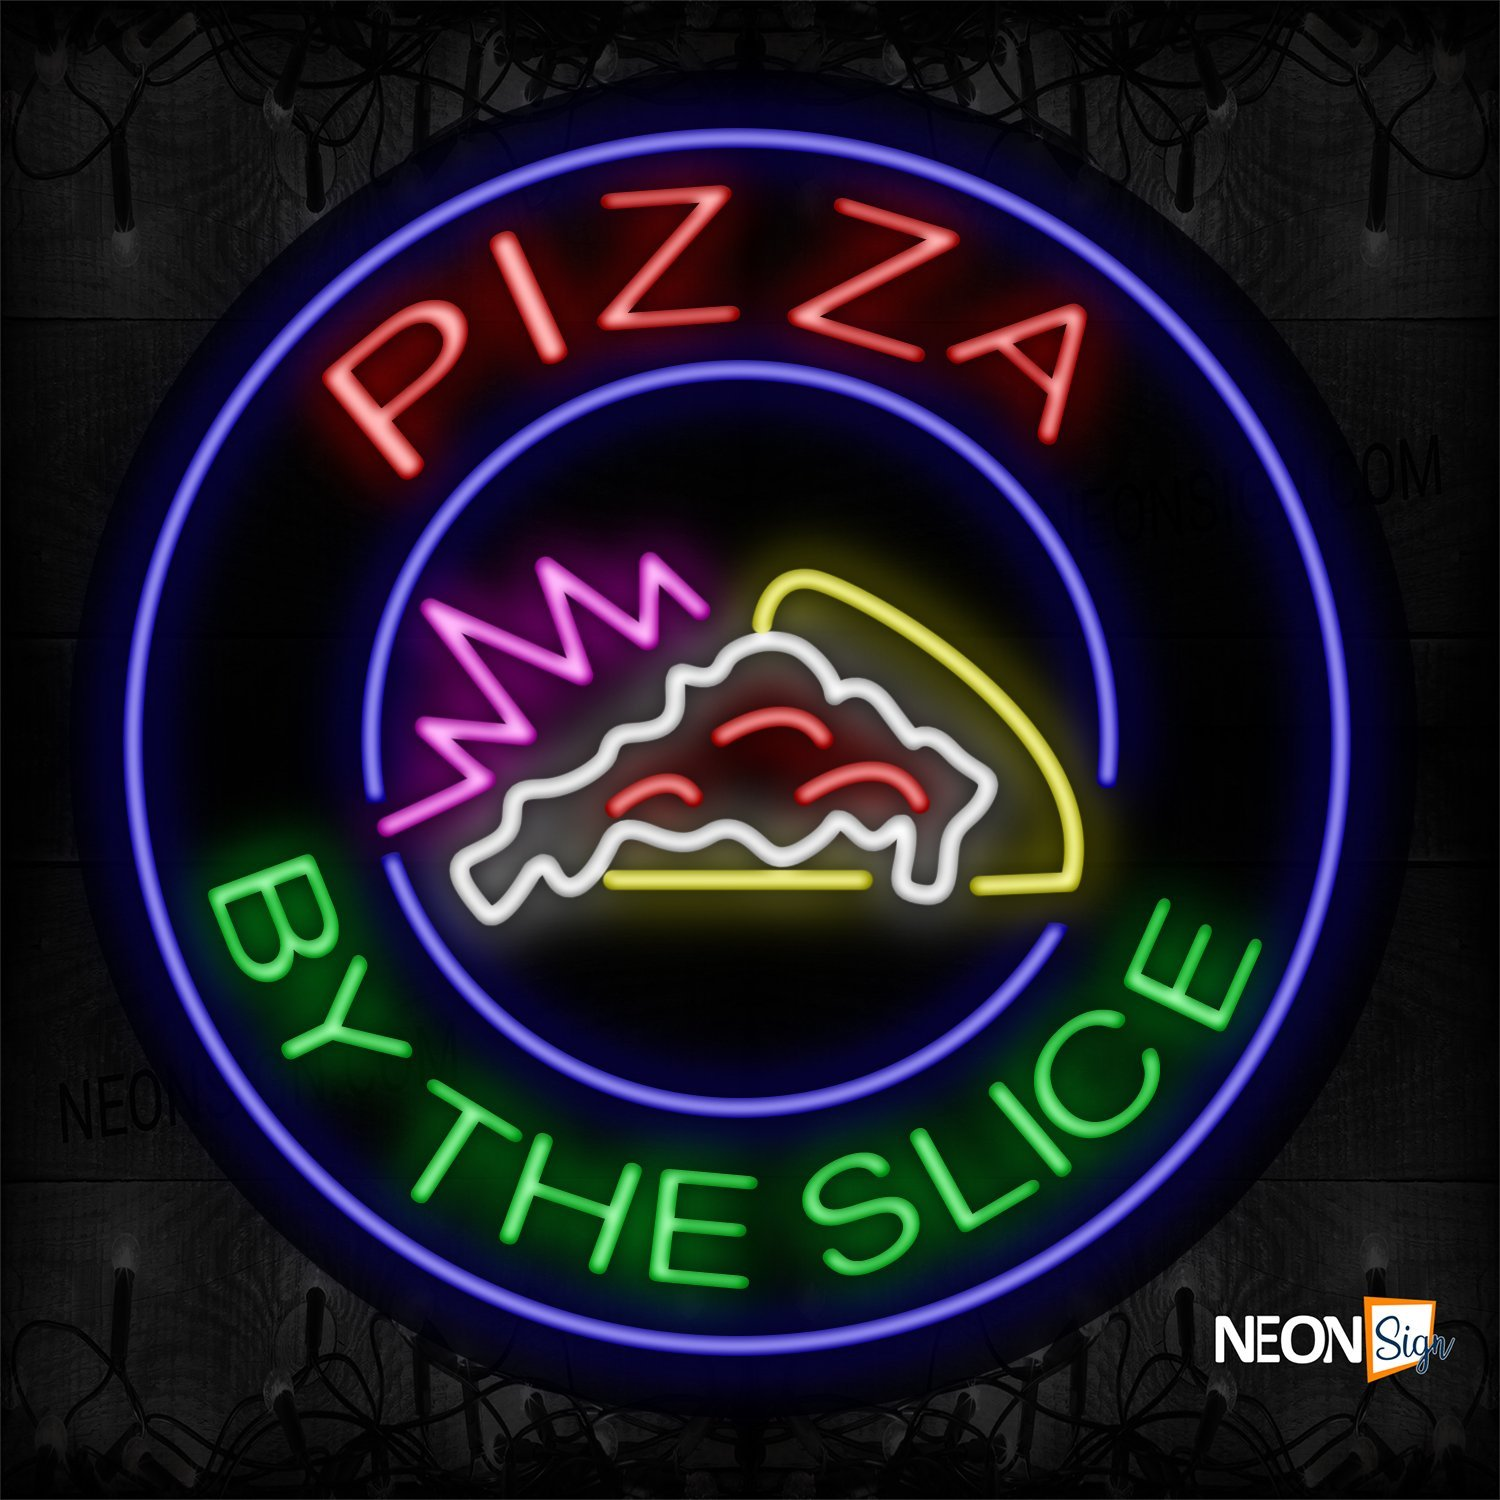 Image of 11335 Pizza By The Slice With Logo And Blue Circle Border Neon Sign_26x26 Contoured Black Backing